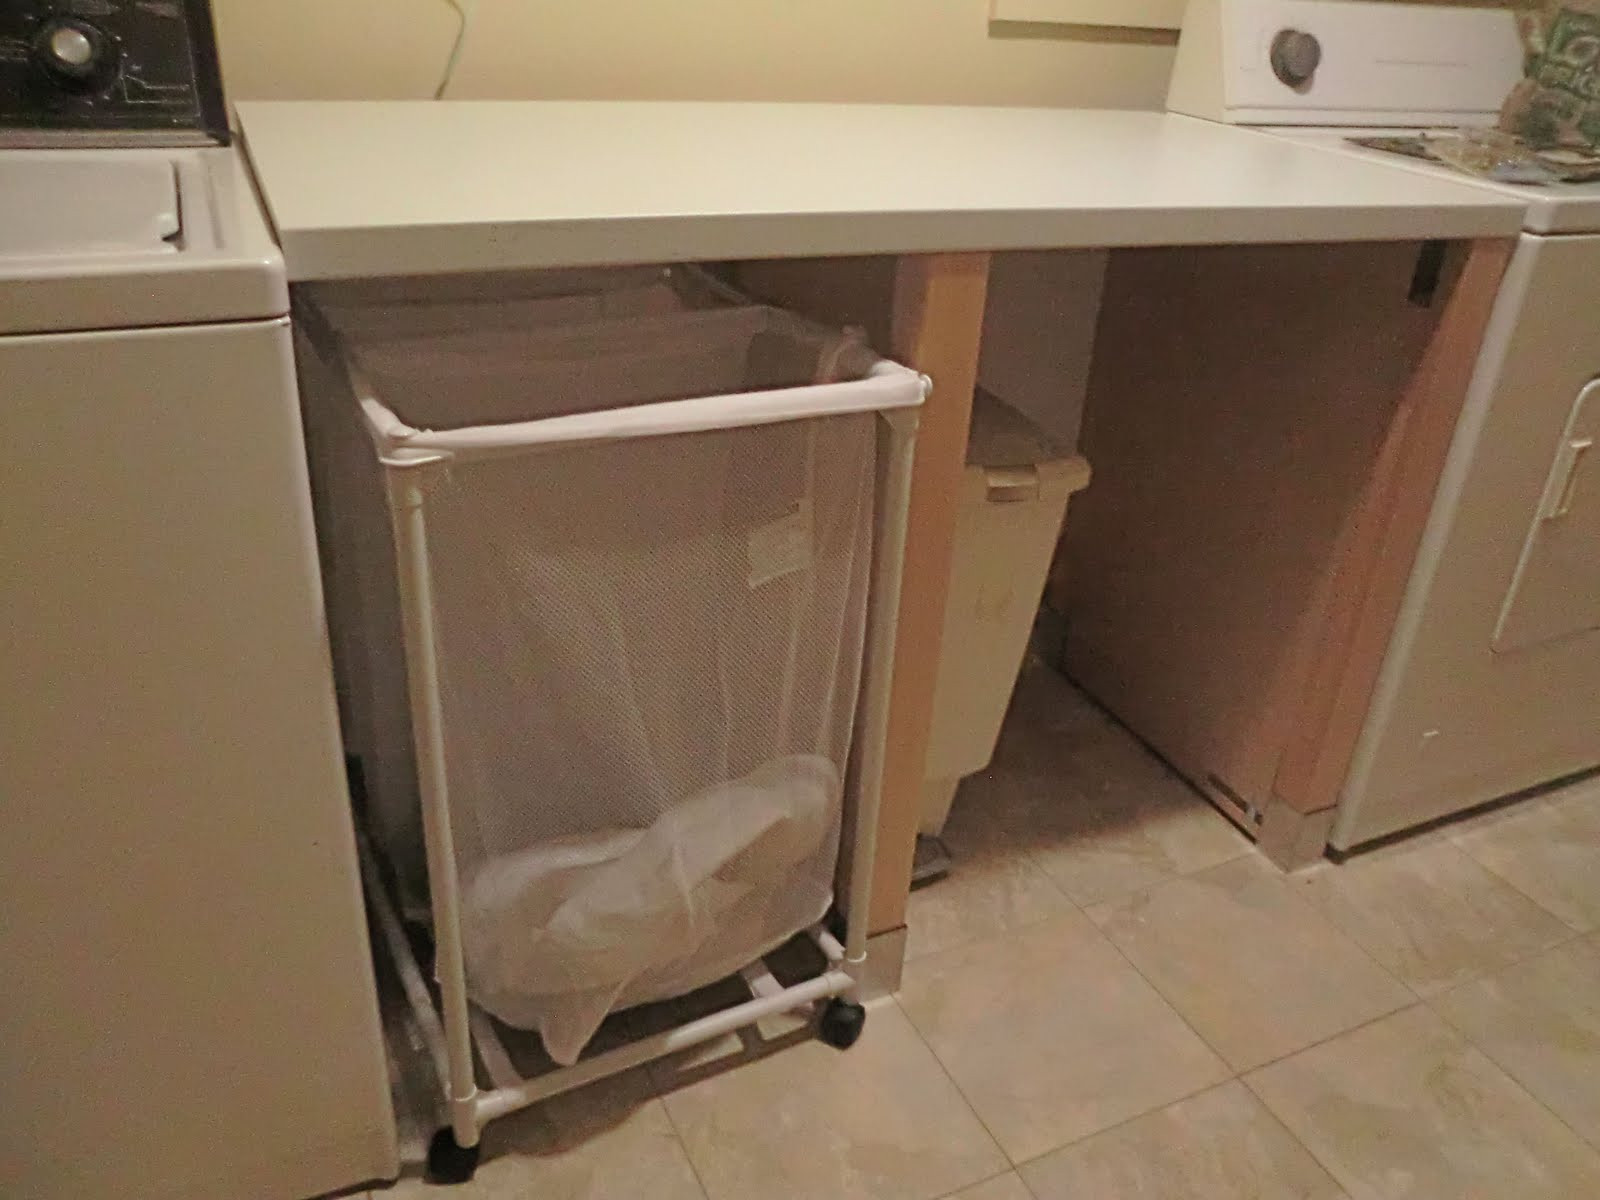 Best ideas about Laundry Folding Table Ikea . Save or Pin Marvelous Dishwasher Cabinet 7 Ikea Laundry Room Folding Now.